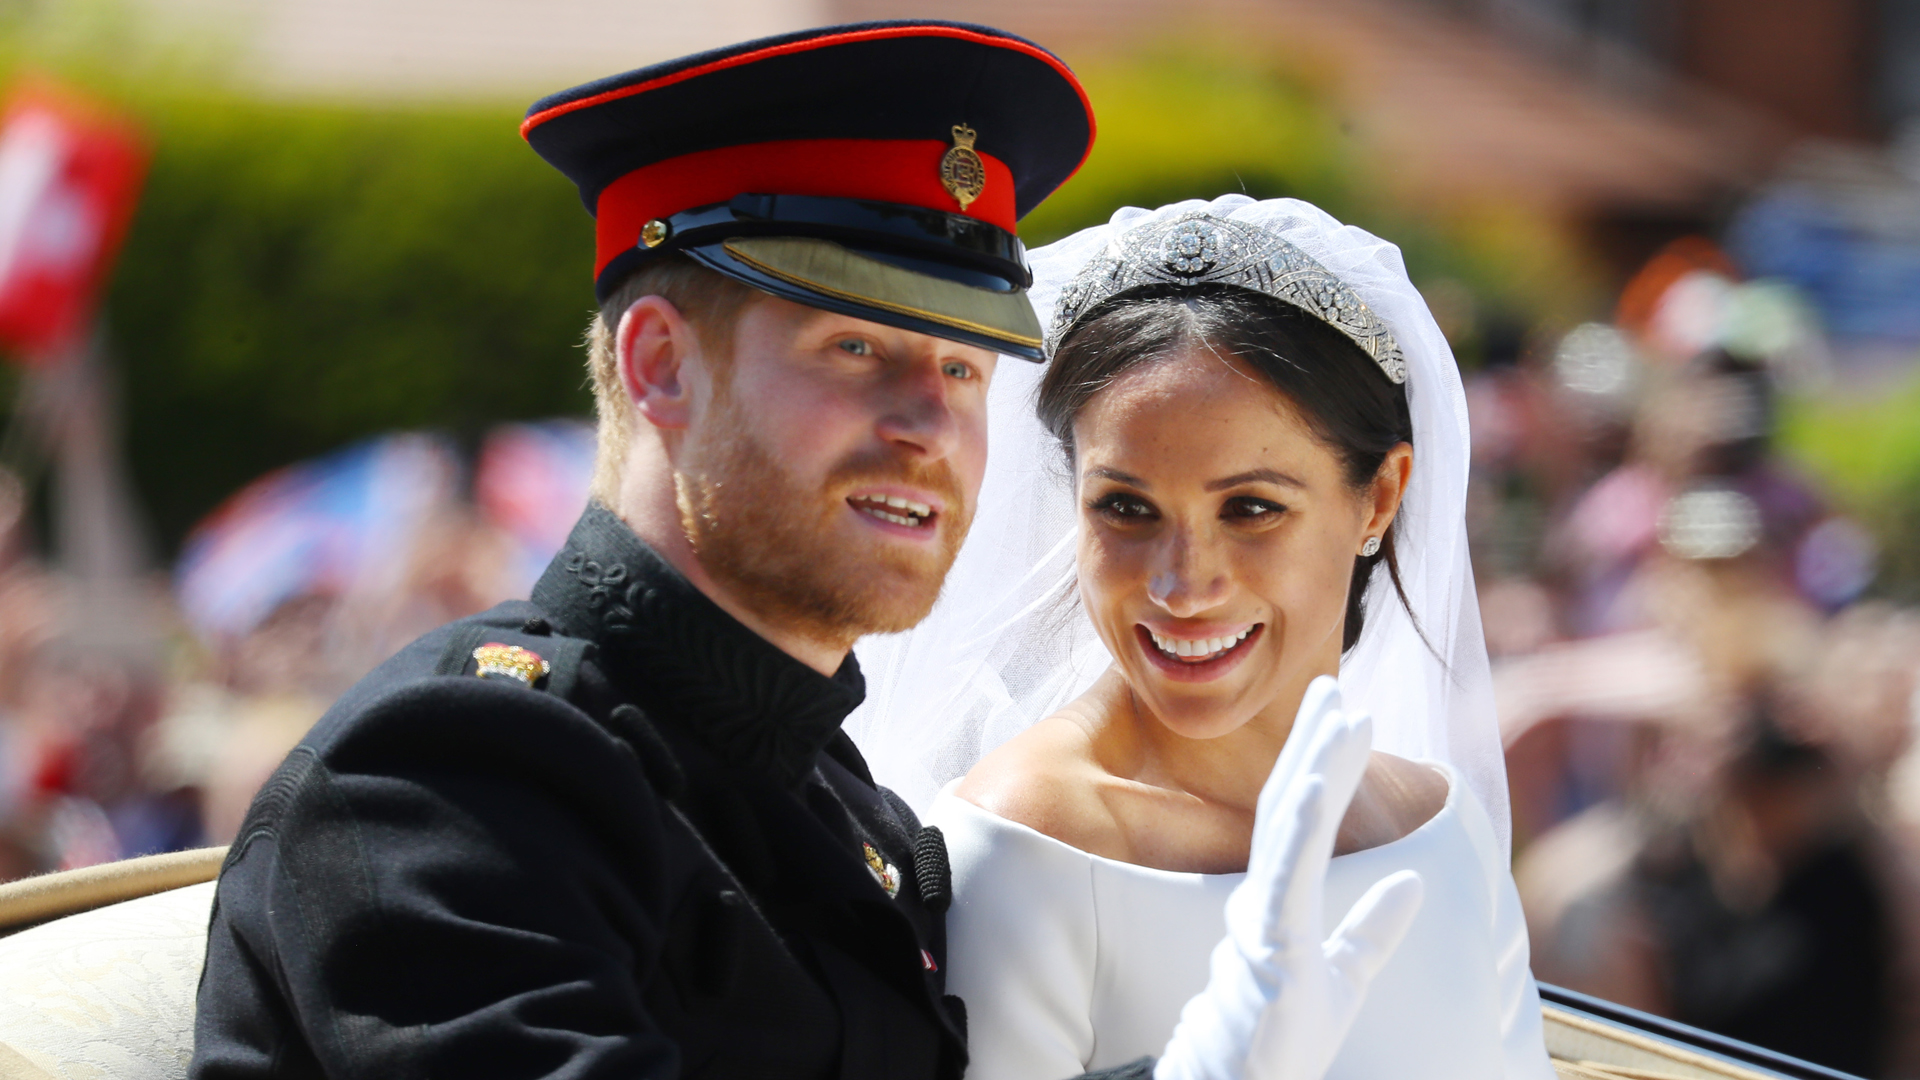 Duke and Duchess of Sussex smiling in their carriage at their royal wedding in Windsor